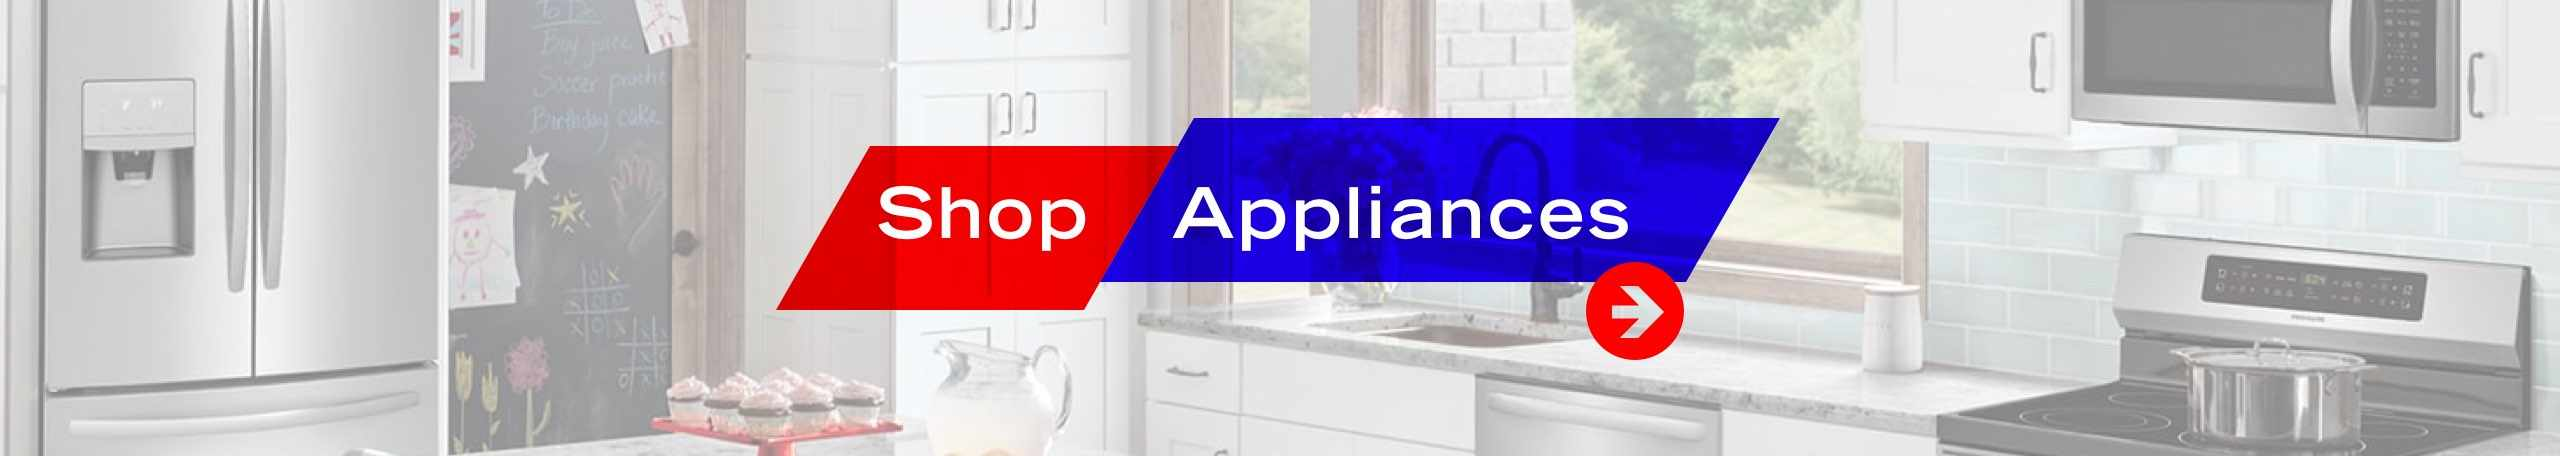 Shop appliances at Gilbert's Appliance